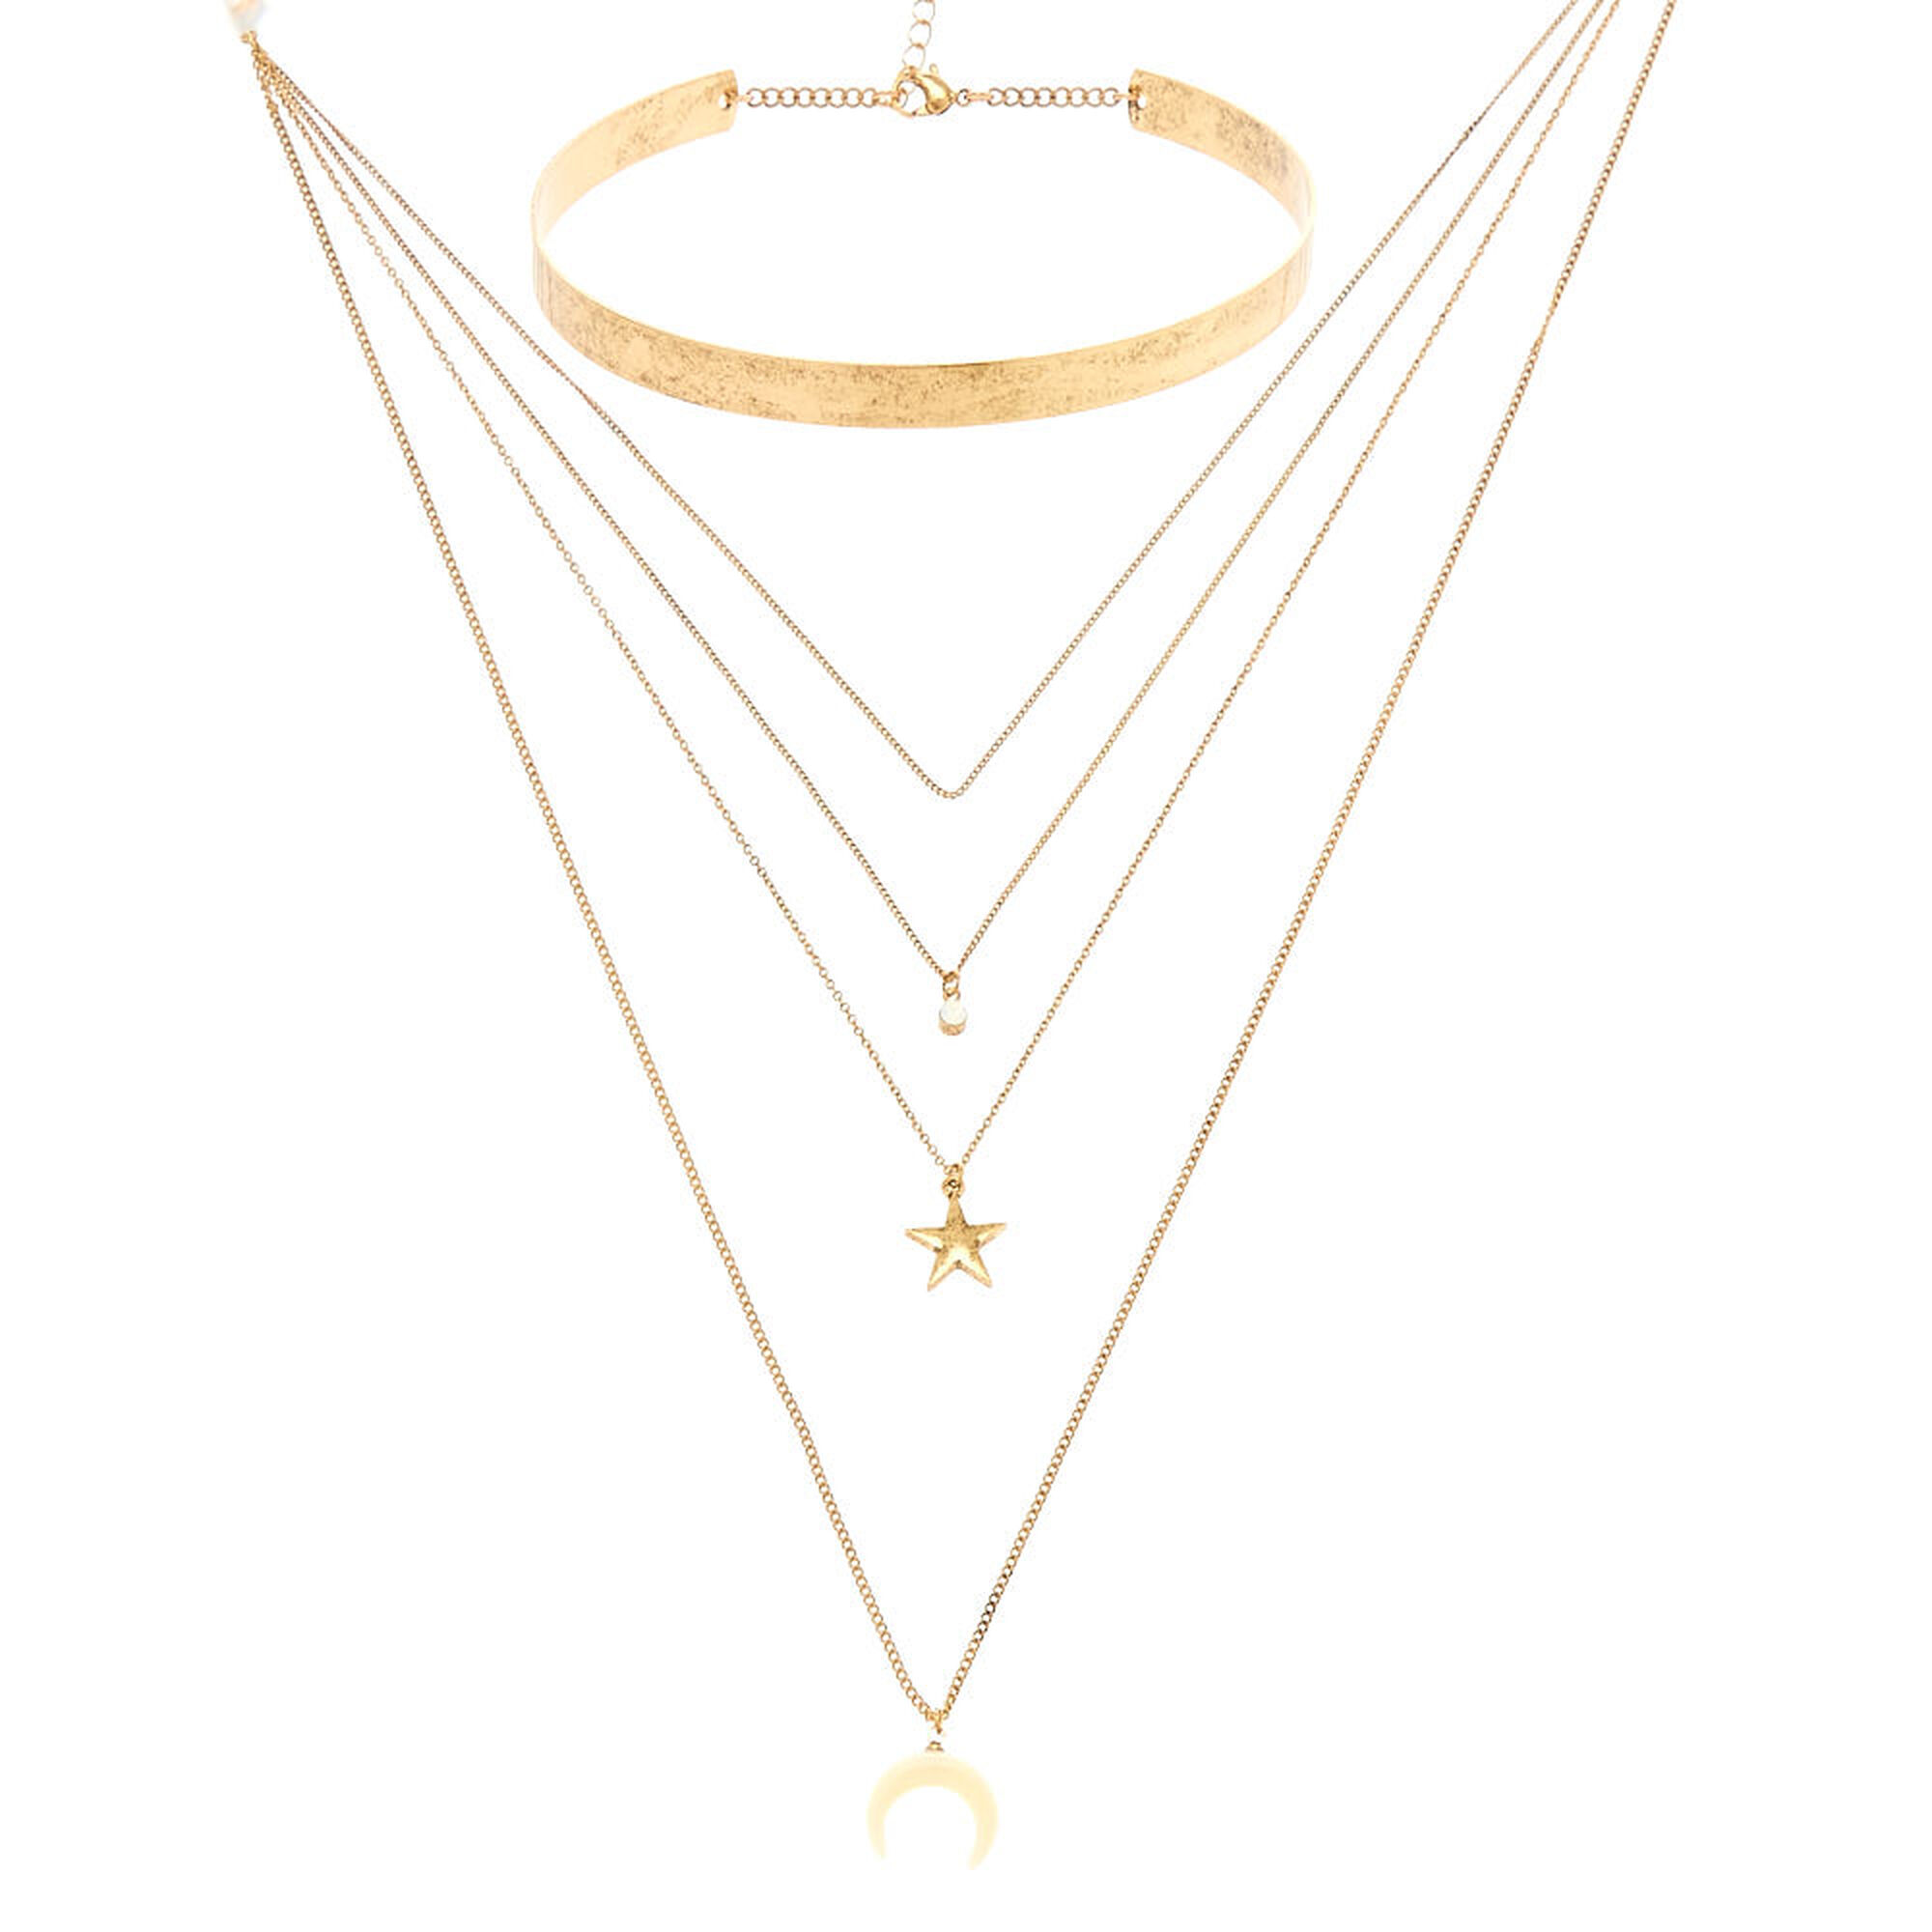 Distressed Gold Layered Choker Charm Necklace